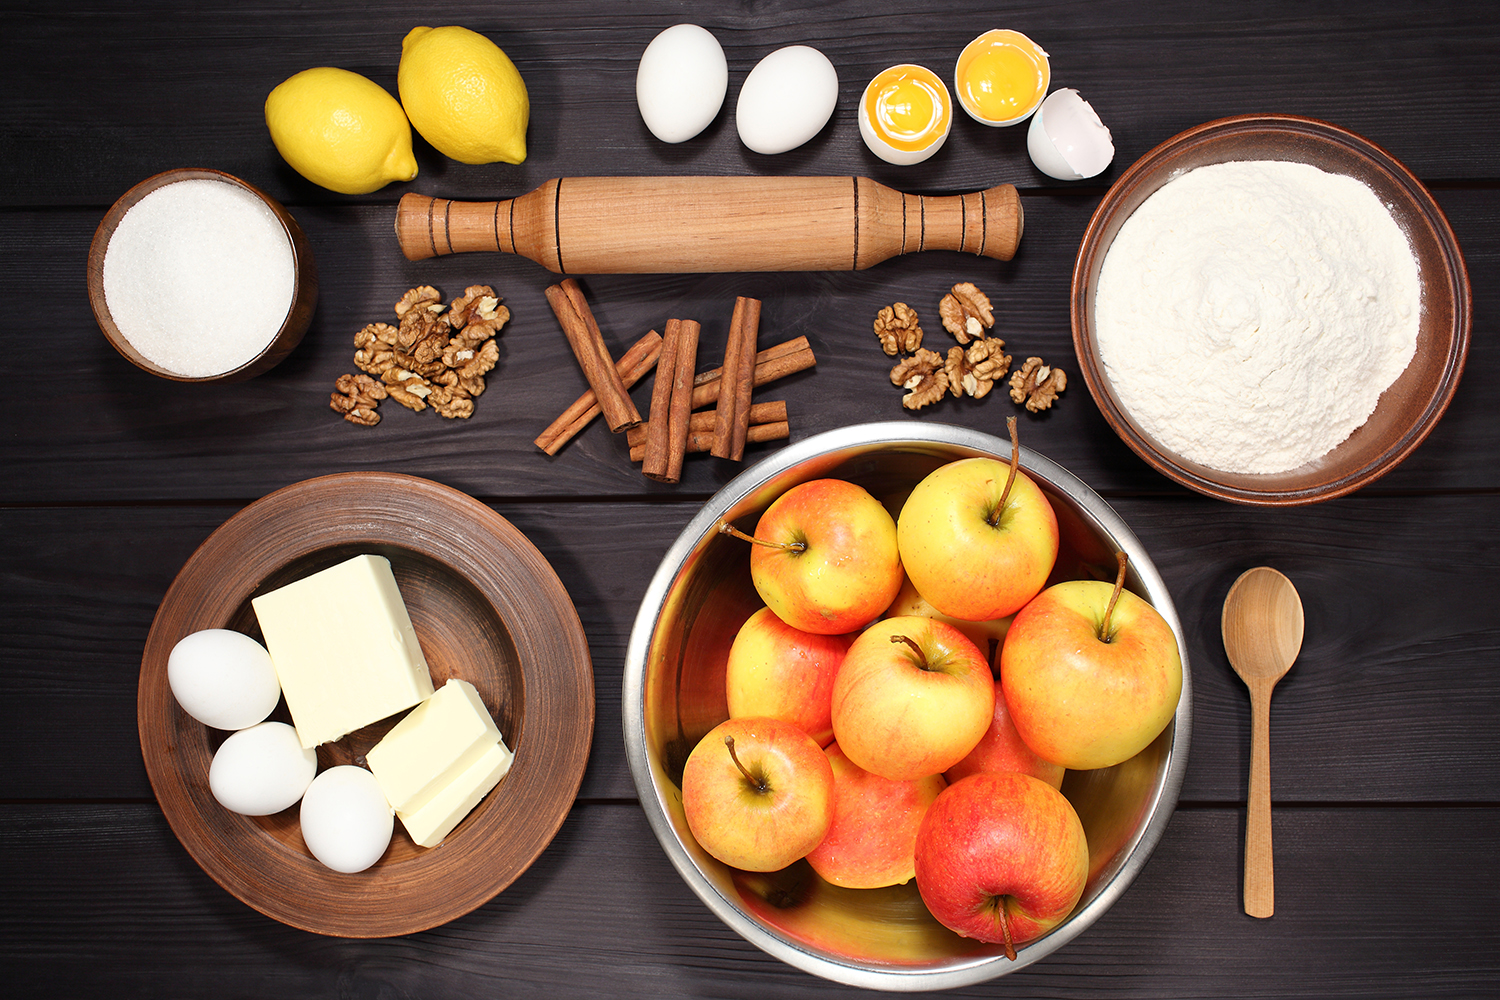 Set 12 photos Apple Pie and raw ingredients for baking. Sweet food series. Dessert. Top view example image 2